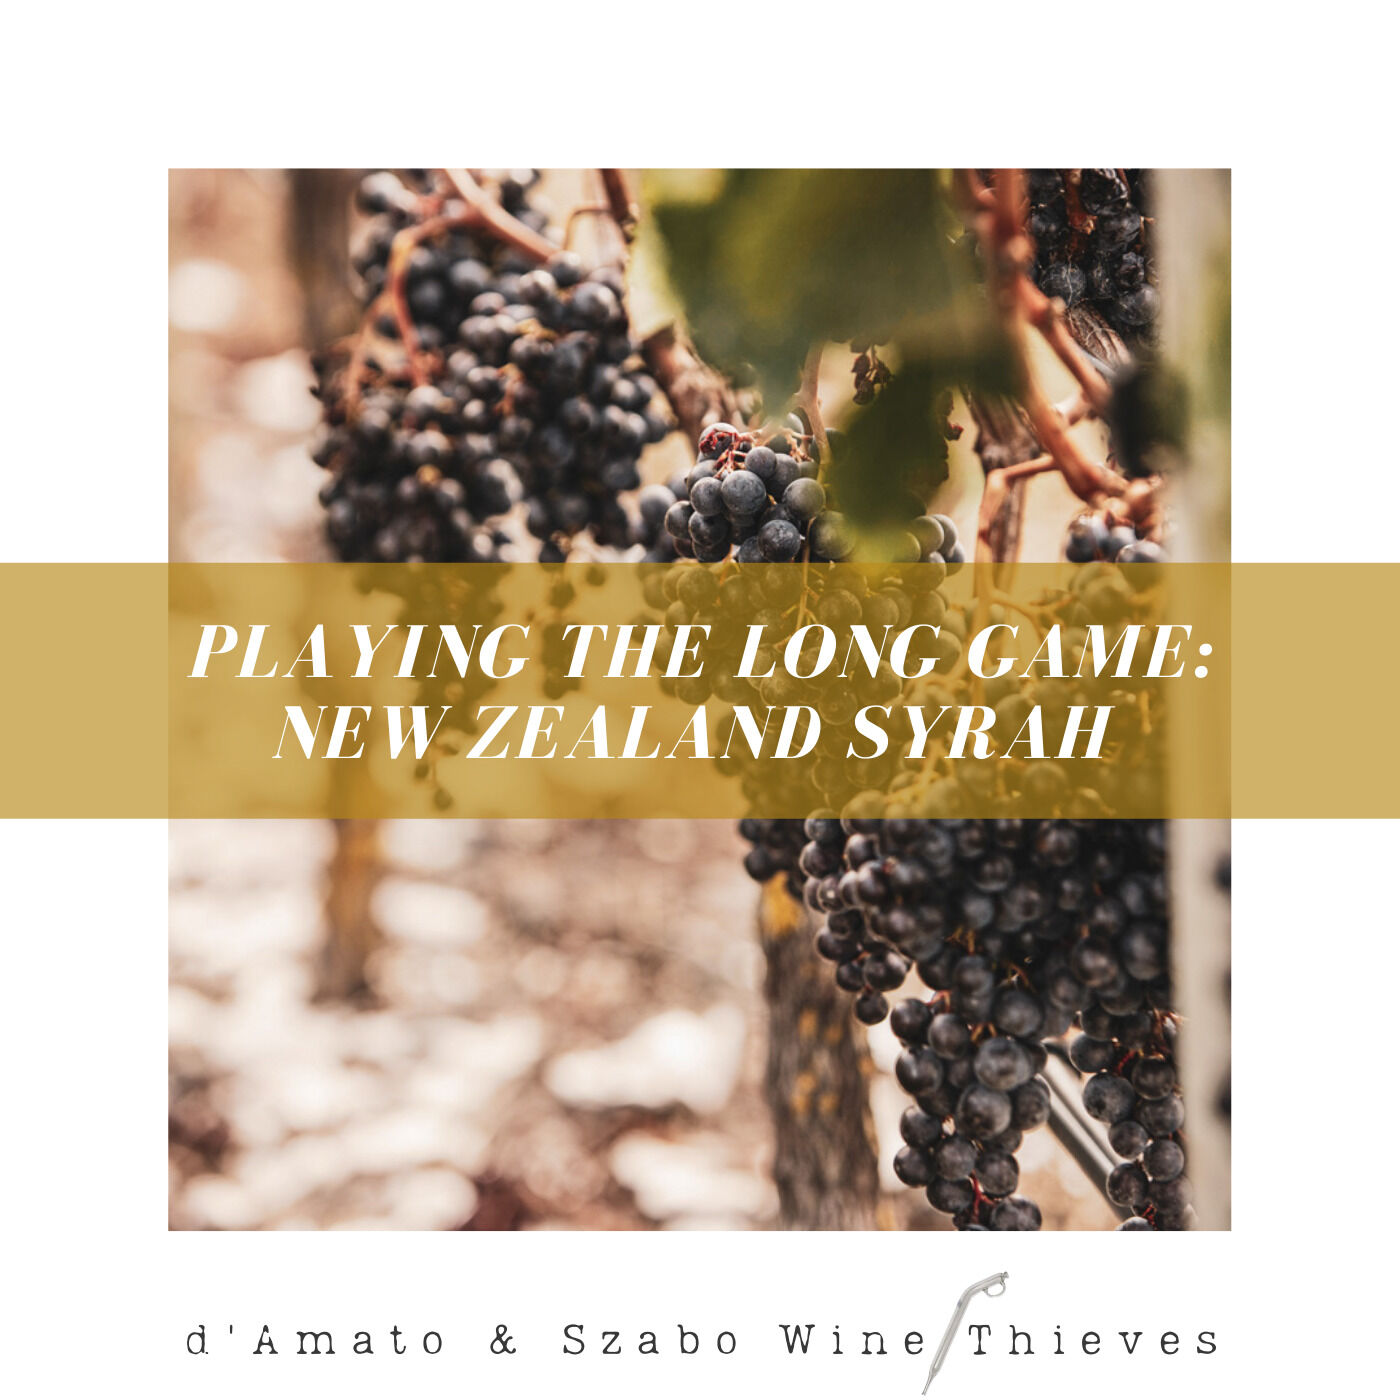 Playing the Long Game: New Zealand Syrah